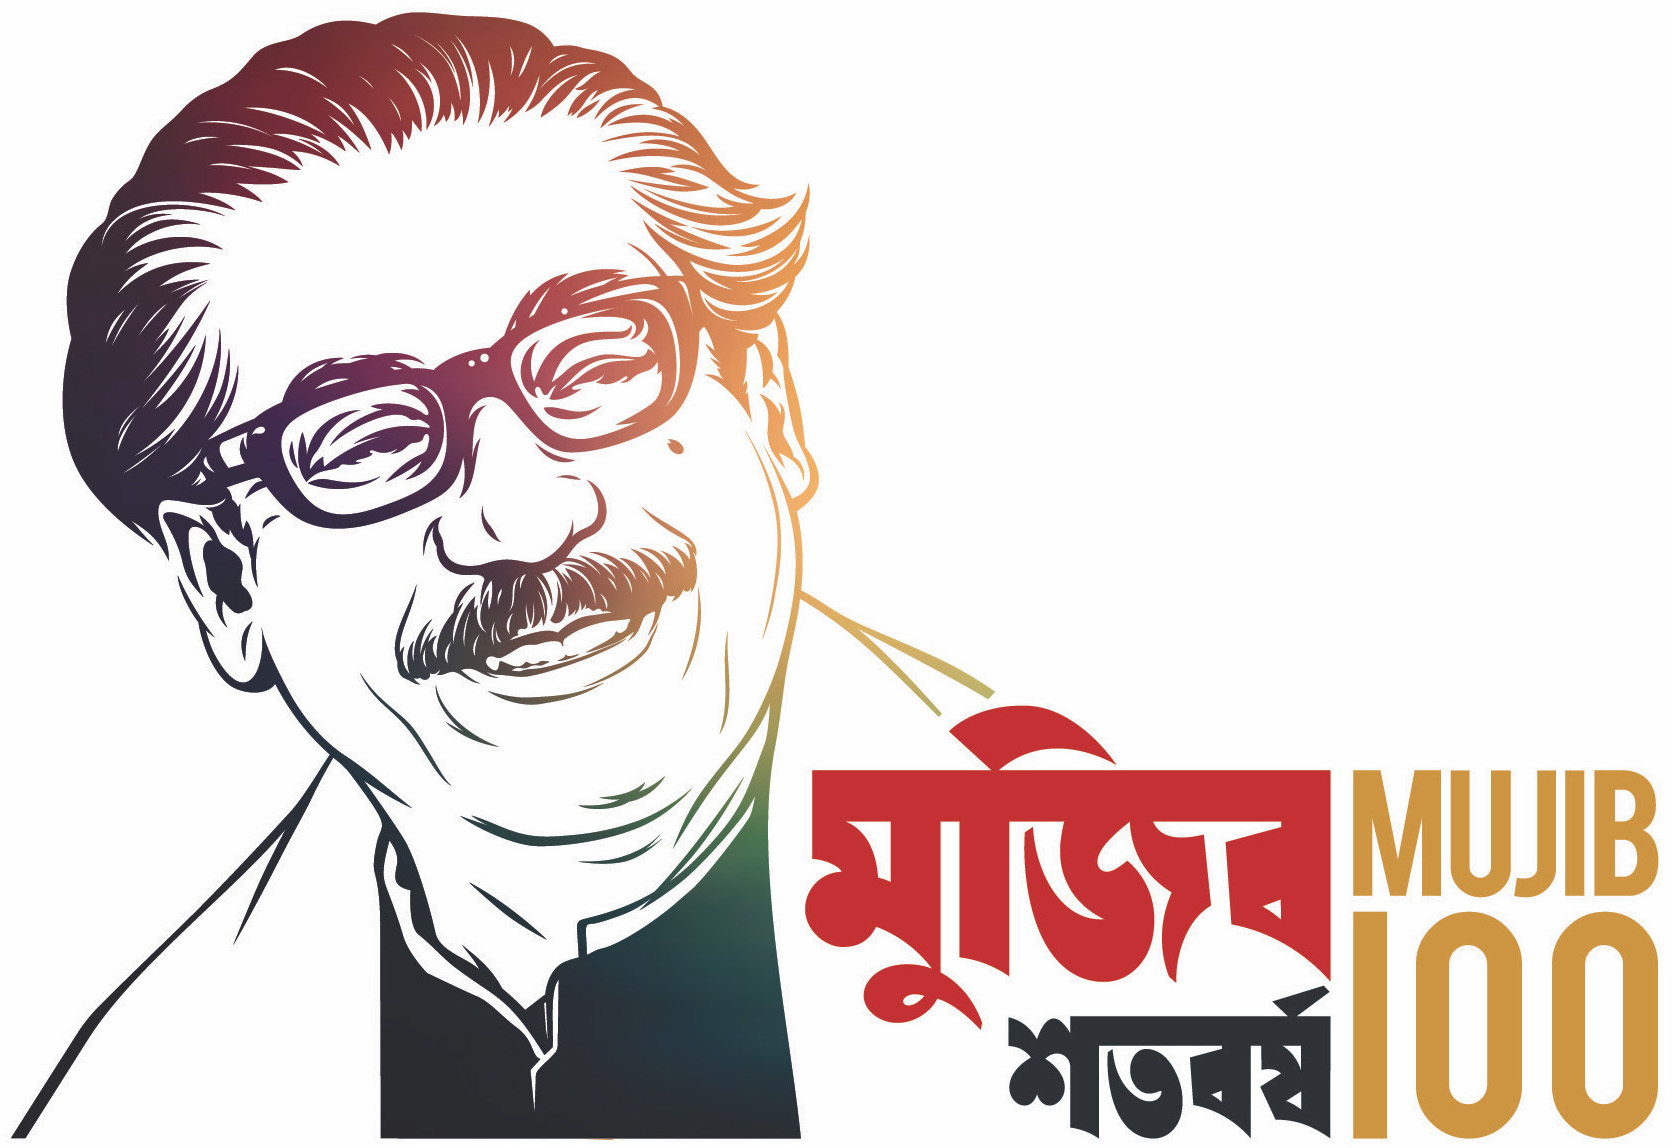 Mujib Borsho will start from March 17, 2020